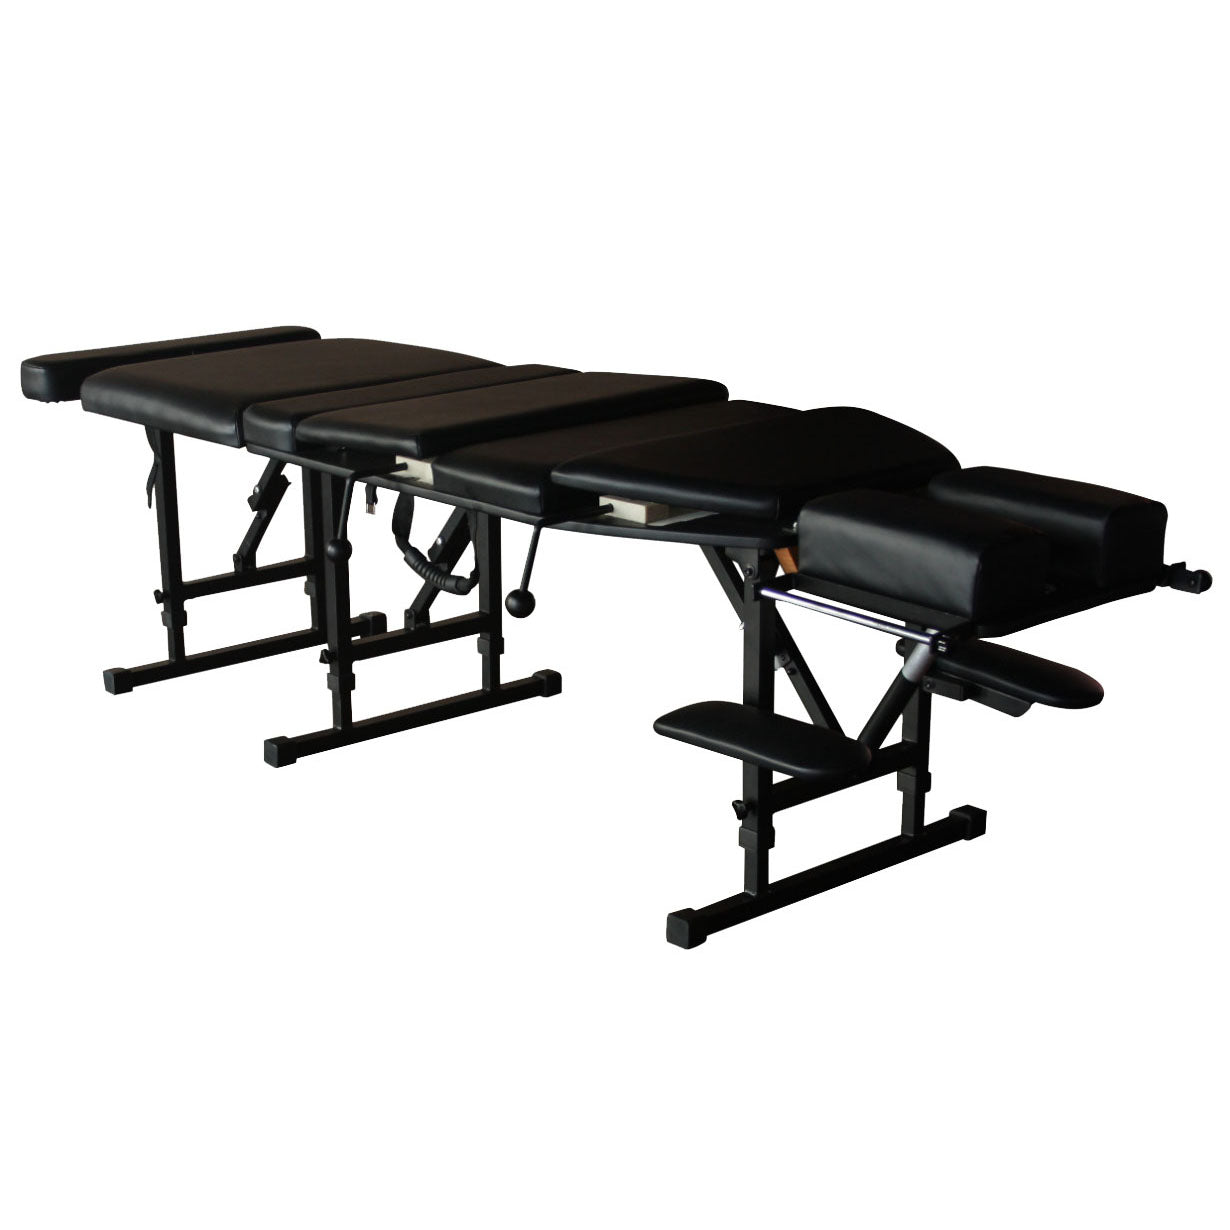 225 : chiropractic table covers - amorenlinea.org